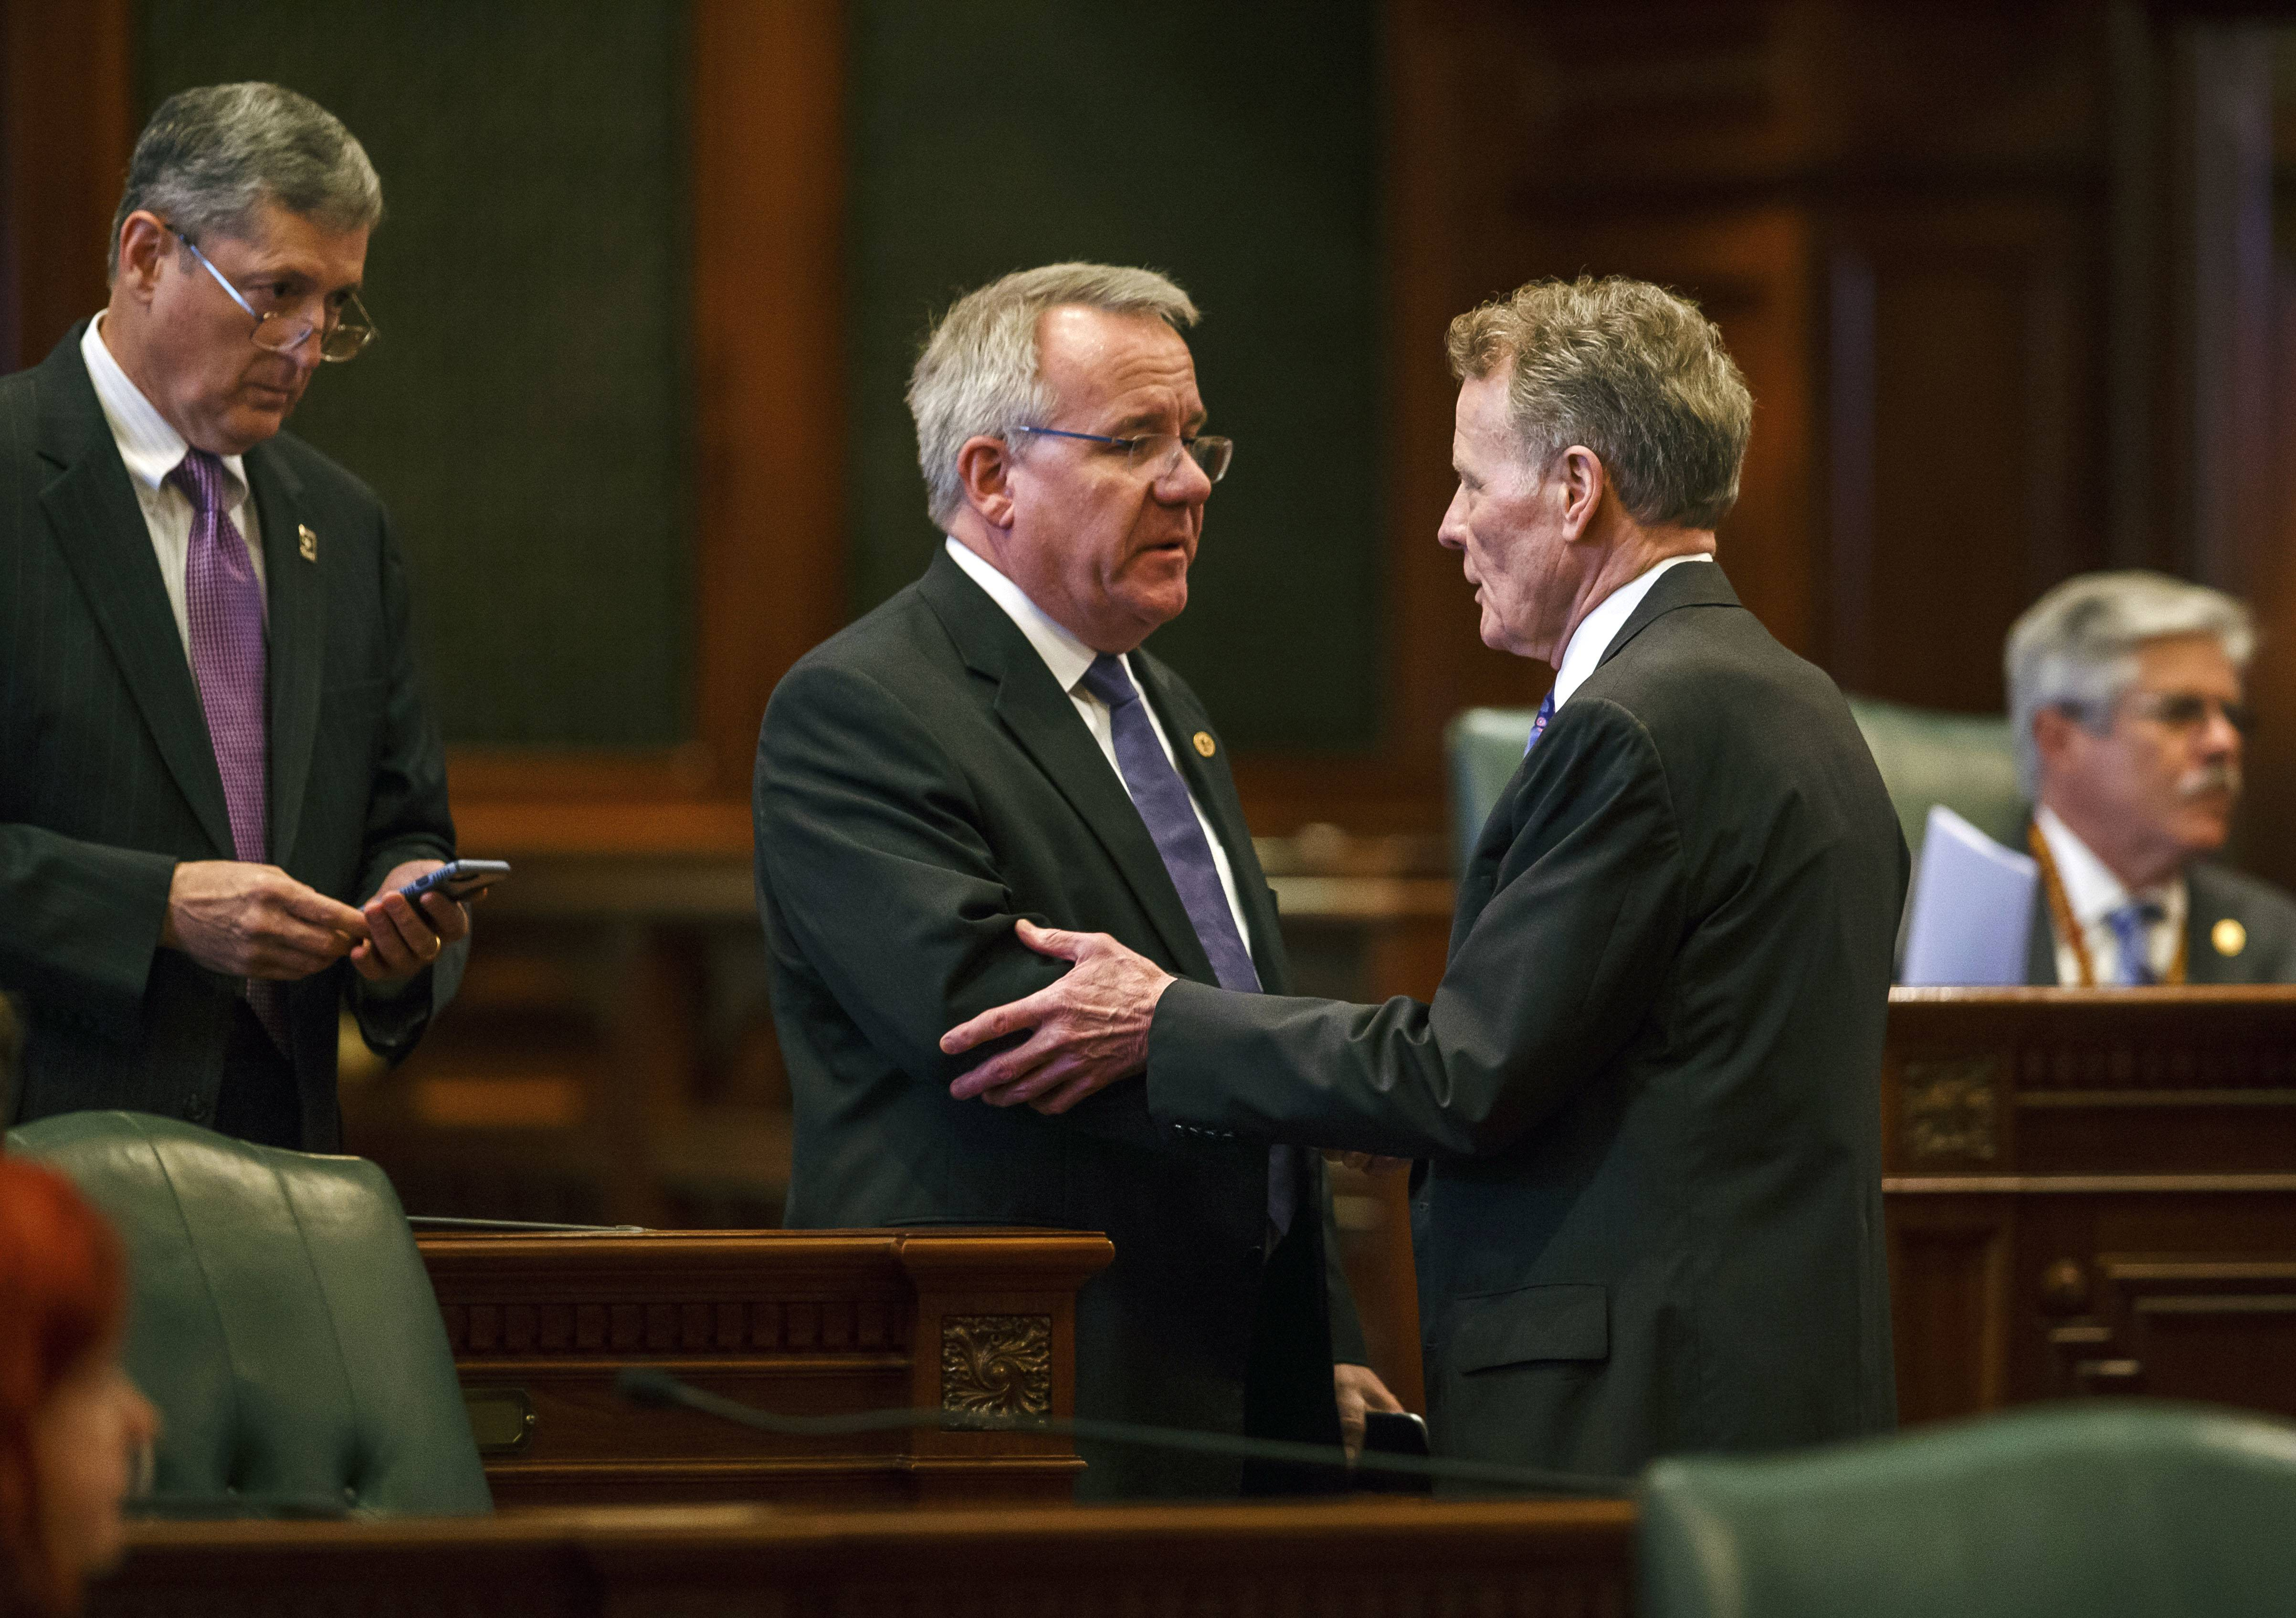 Illinois State Rep. Steve Andersson, R-Geneva, center, shakes hands with Illinois Speaker of the House Michael Madigan, D-Chicago, right, after the Illinois House voted to override Gov. Rauner's veto and pass a budget for the first time in two years during an overtime session at the Illinois State Capitol.